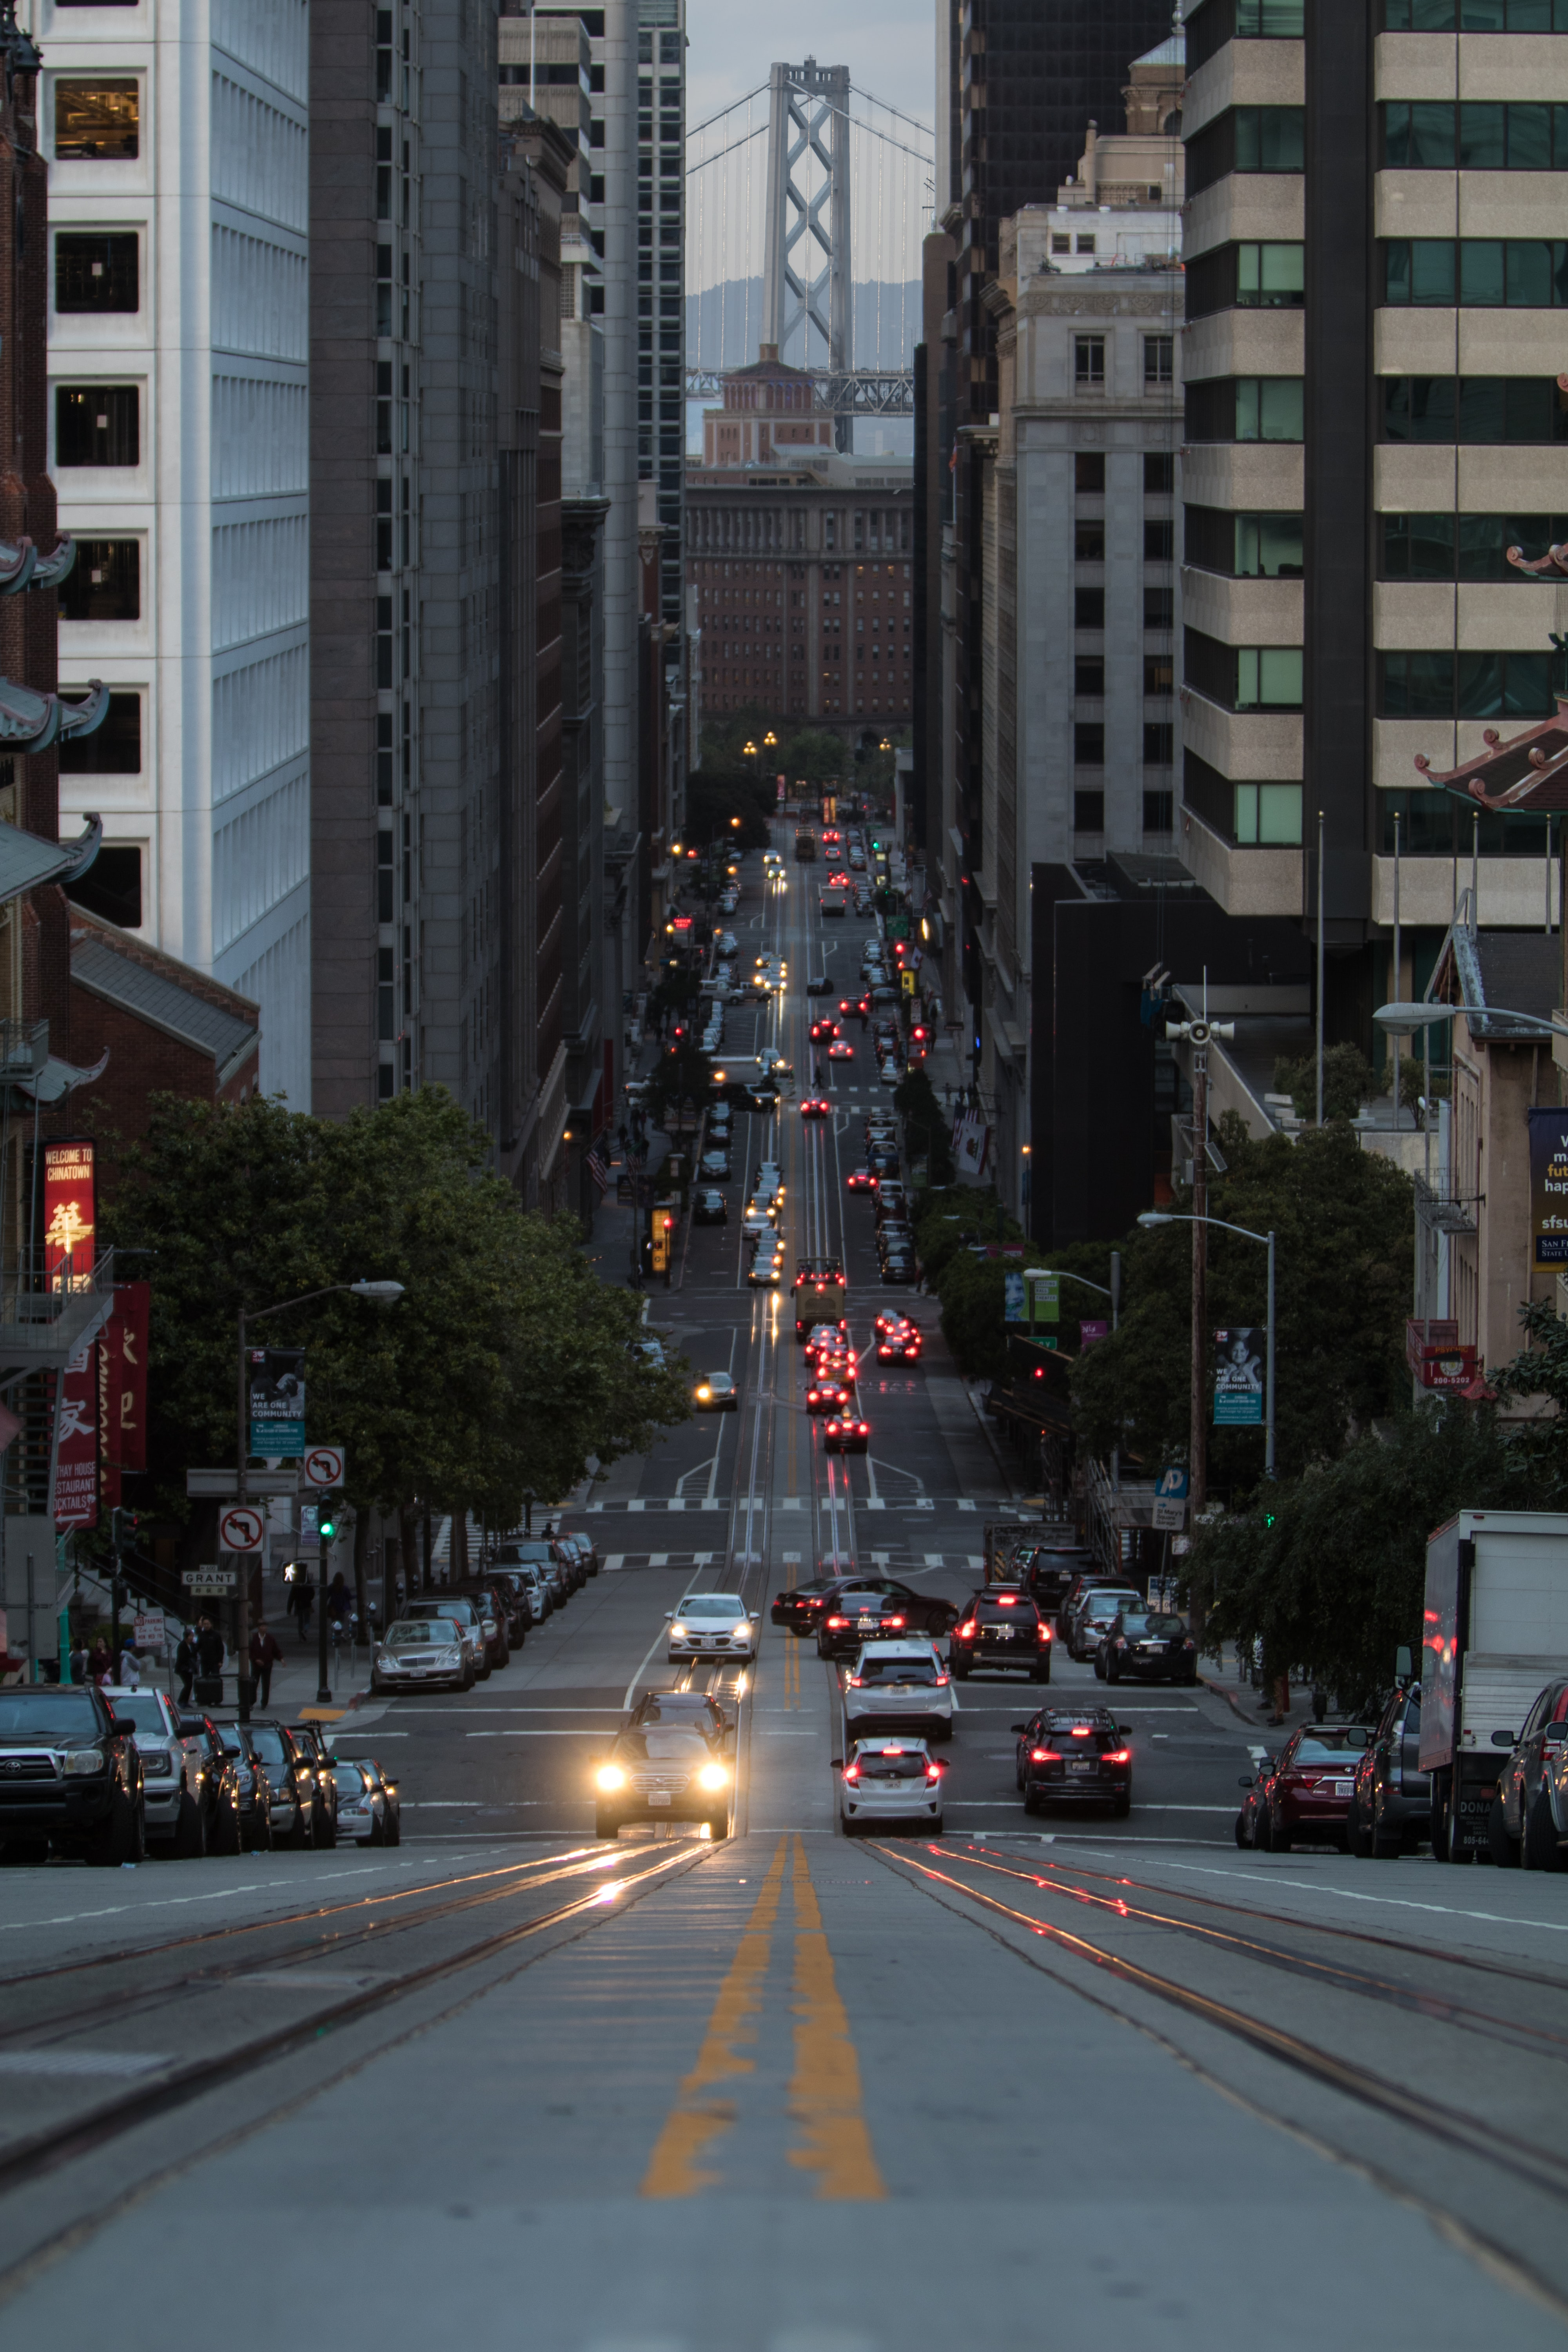 A sloping street in San Francisco in the evening